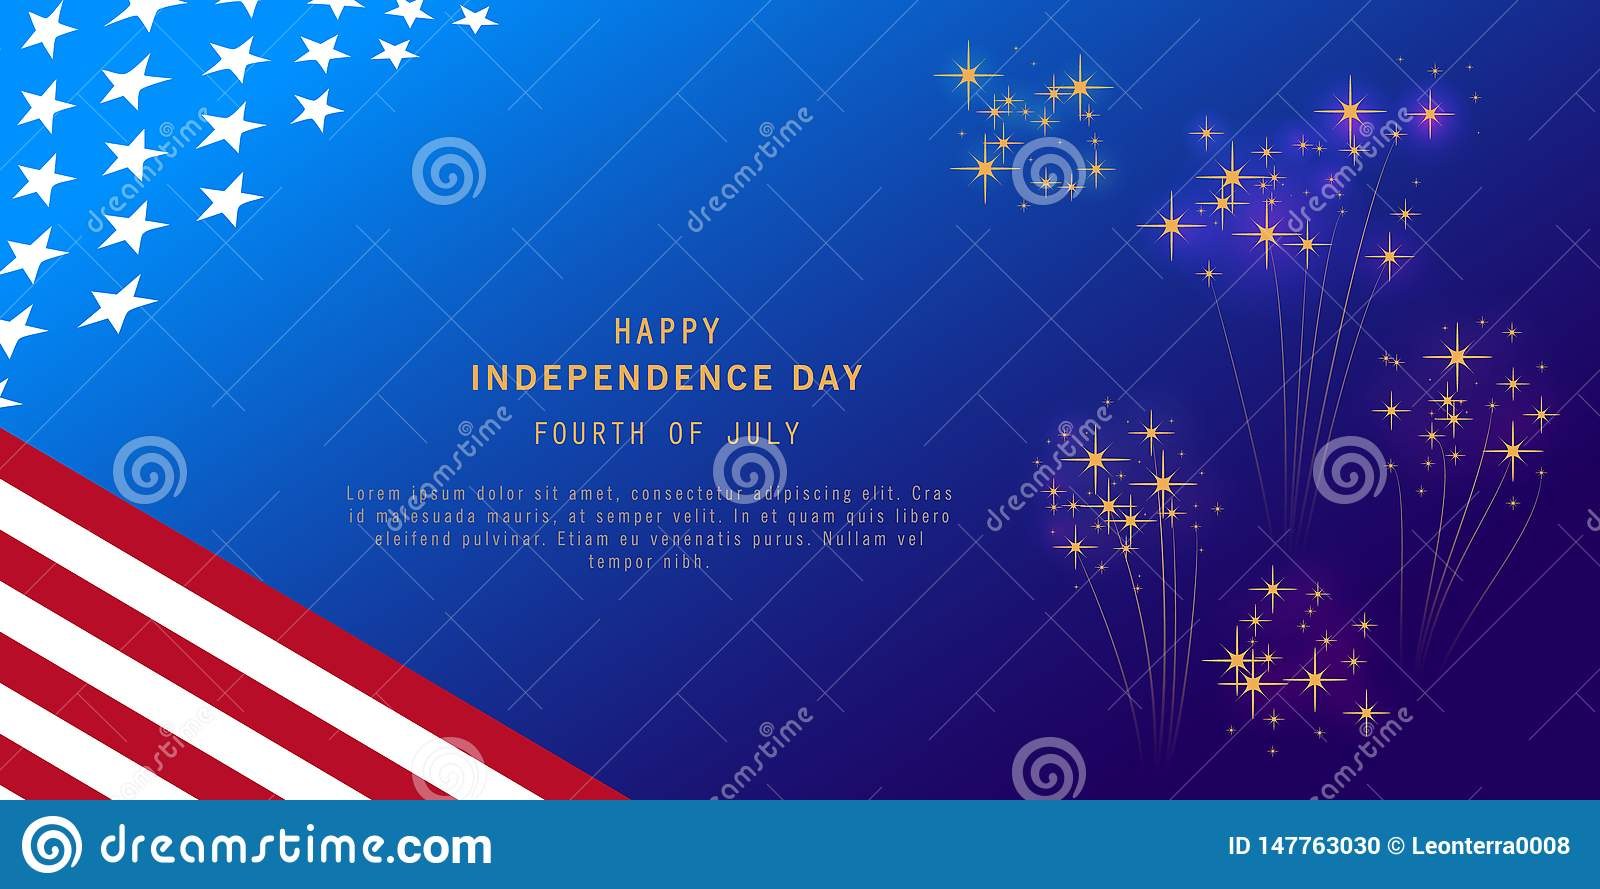 Independence Day background with fireworks and USA flag. Fourth of July celebration banner, poster, flyer, greeting card design.